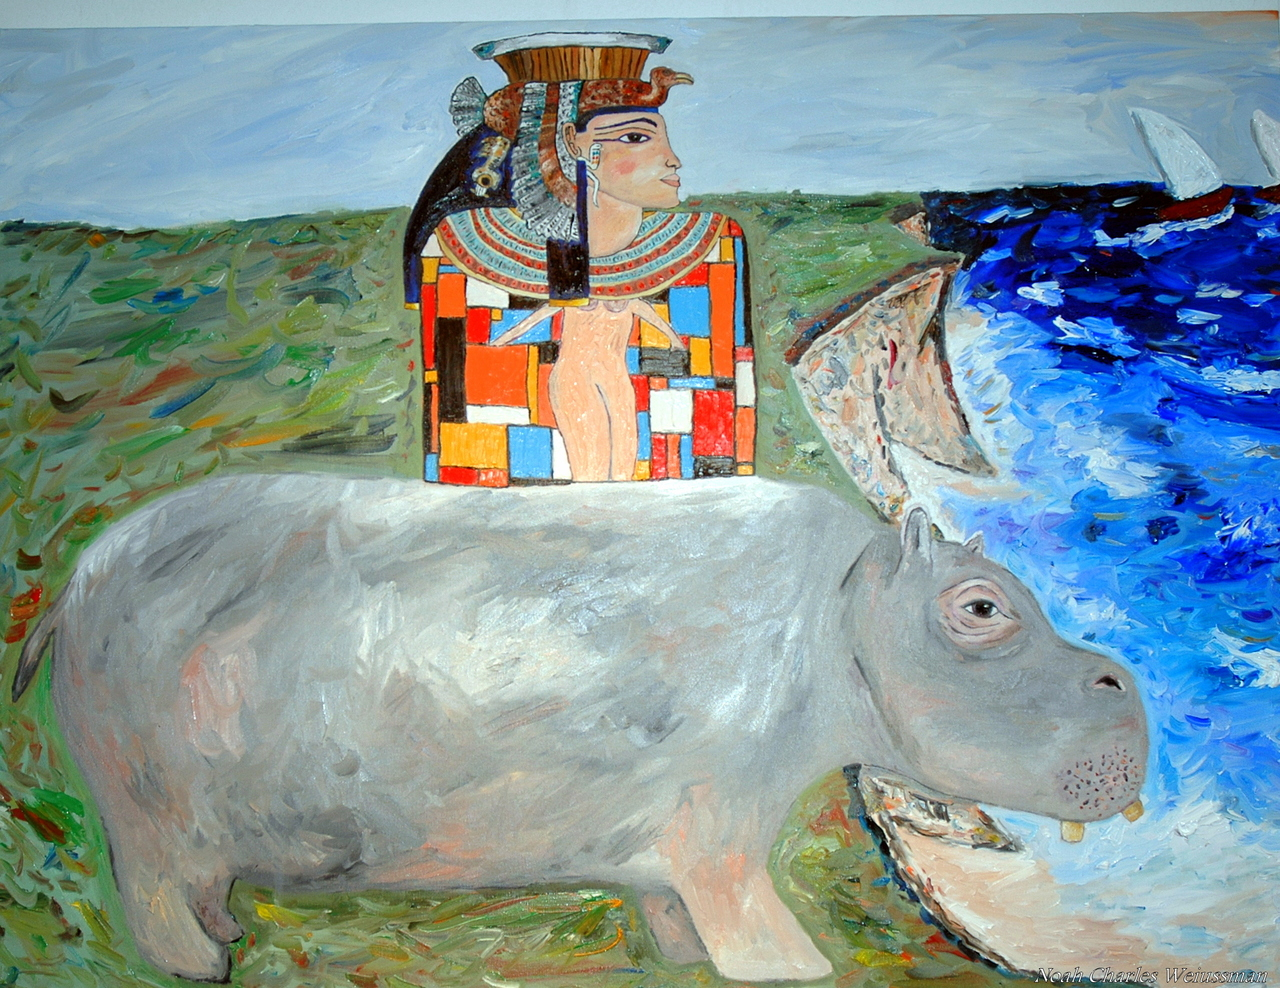 the sun never sets on power moves. Noah Charles Weissman- What if… (72 x 48' oil) cleopatra and the hungry hungry hippo reflect over lost love that is sailing away.